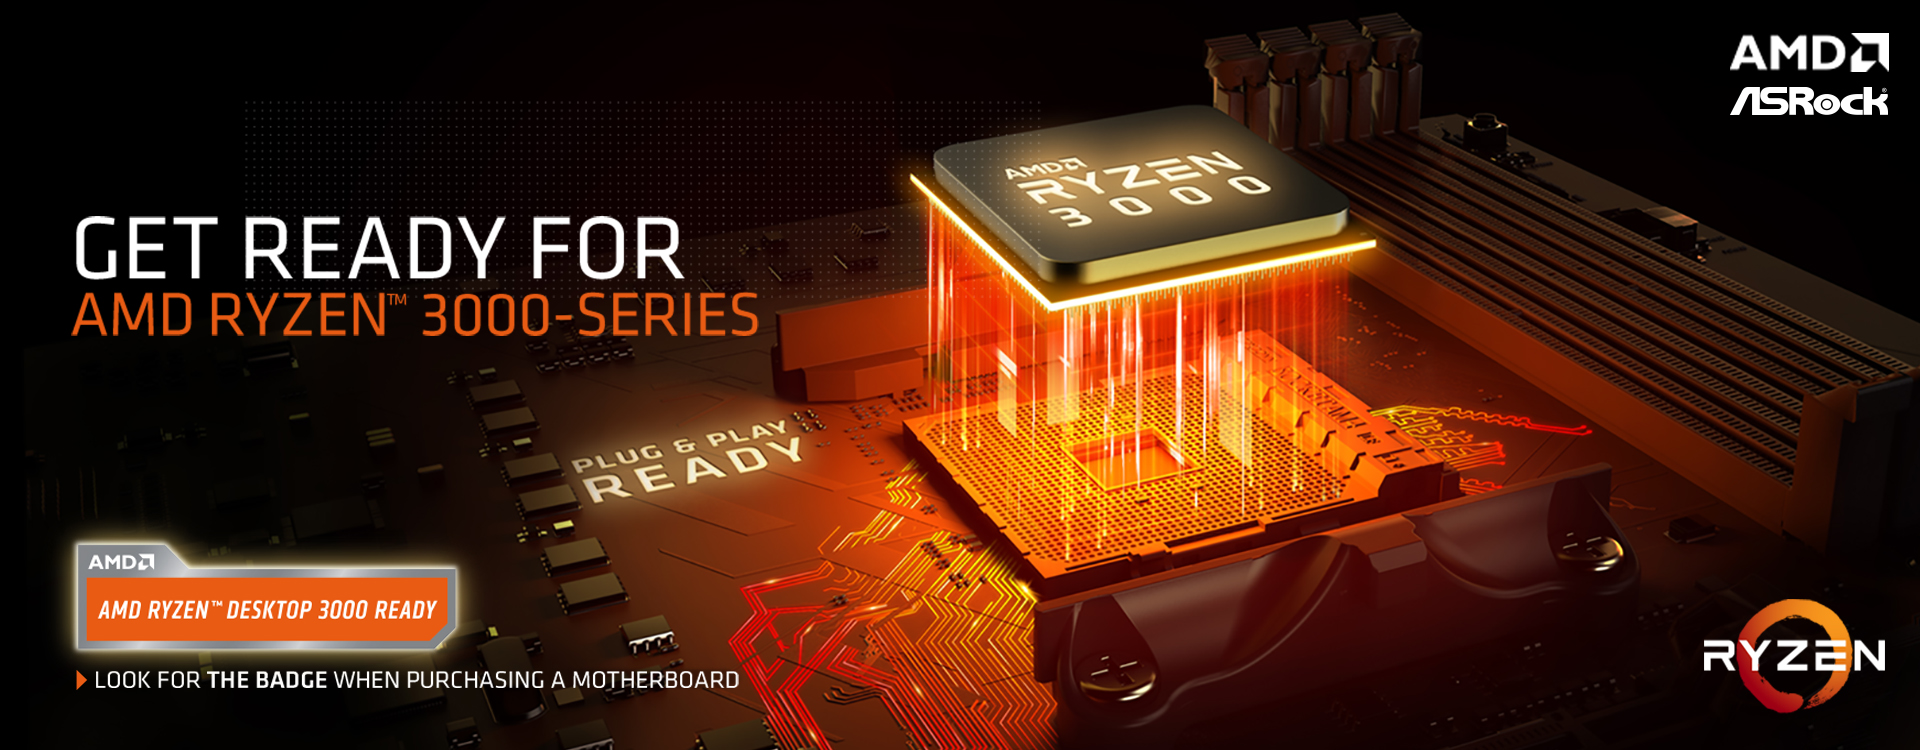 AMD Ryzen 3000 Series banner that shows a graphic of a motherboard with the AMD Ryzen 3000 CPU Approaching the Socket with Light and streaming geometric graphics in between. There is also text that reads: GET READY FOR AMD RYZEN 3000-SERIES -  AMD RYZEN DESKTOP 3000 READY - PLUG & PLAY READY - LOOK FOR THE BADGE WHEN PURCHASING A MOTHERBOARD